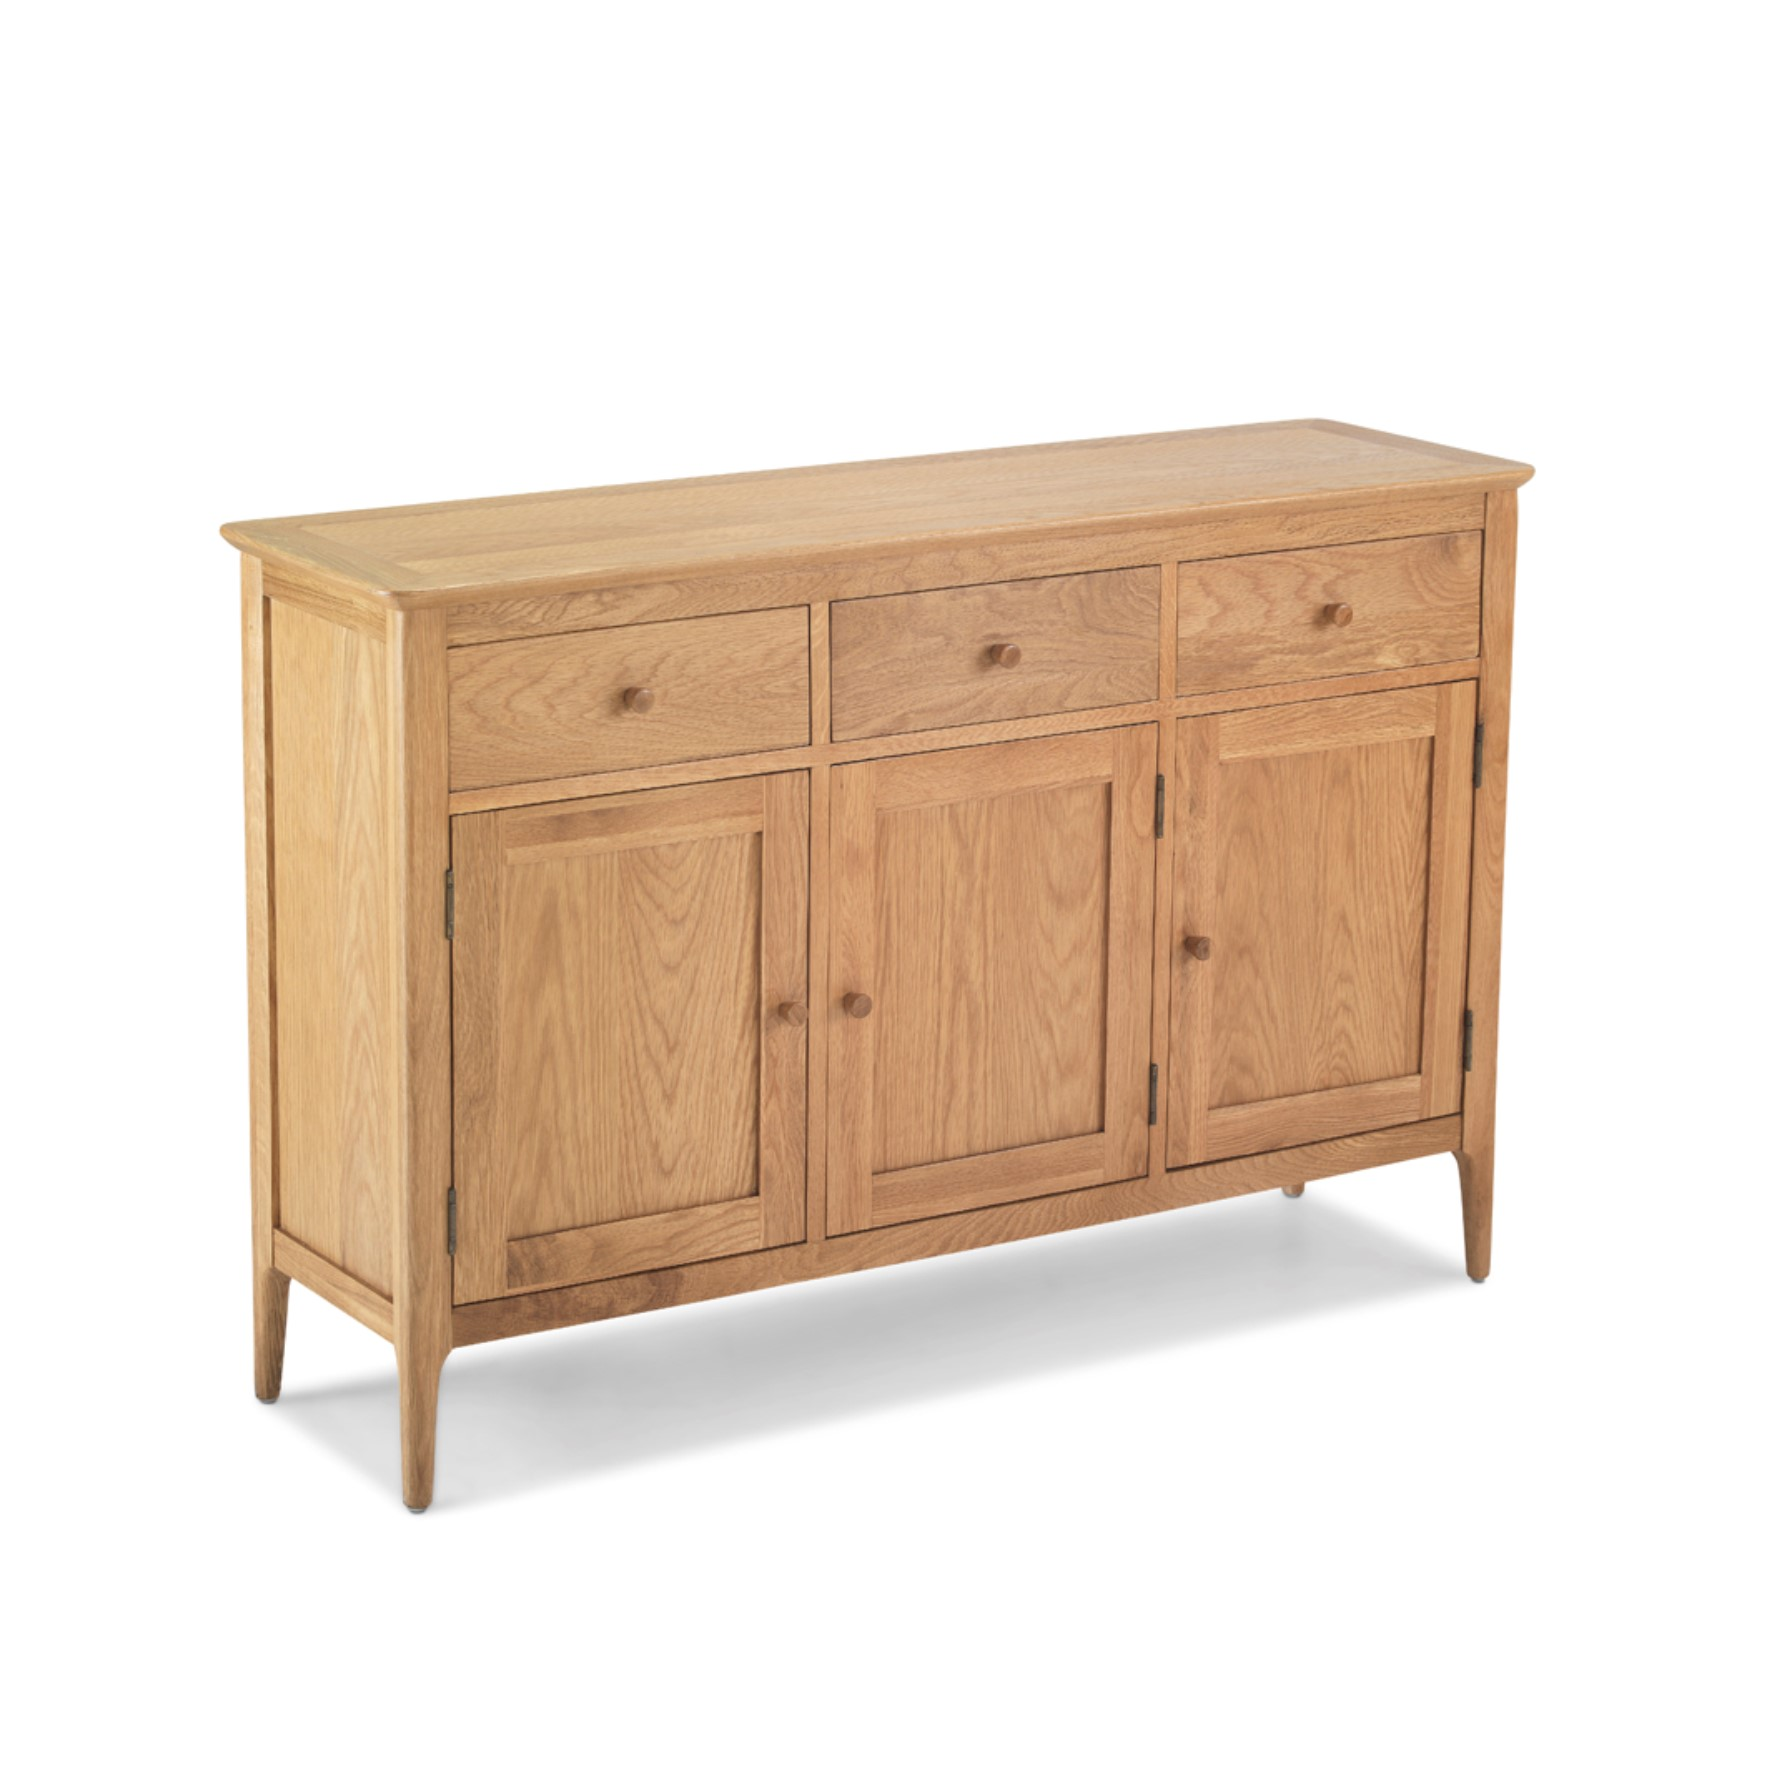 Stockholm Large Sideboard 3 Doors & 3 Drawers